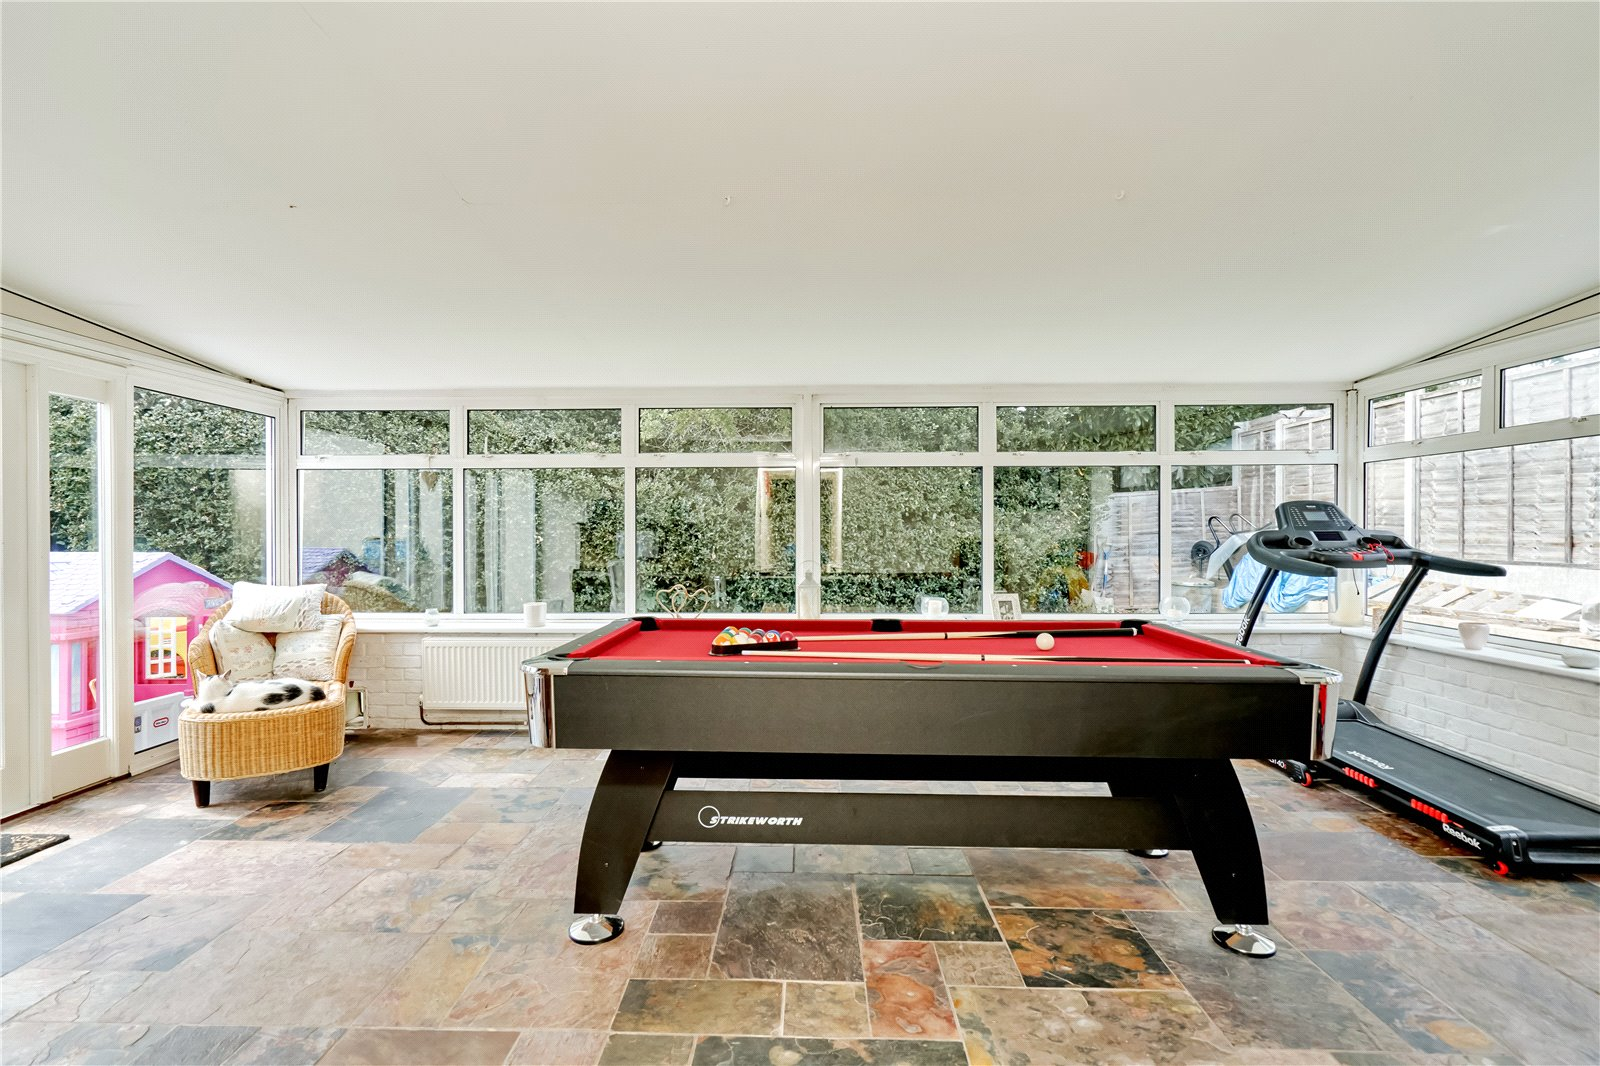 4 bed house for sale in Welwyn, AL6 0QG 14